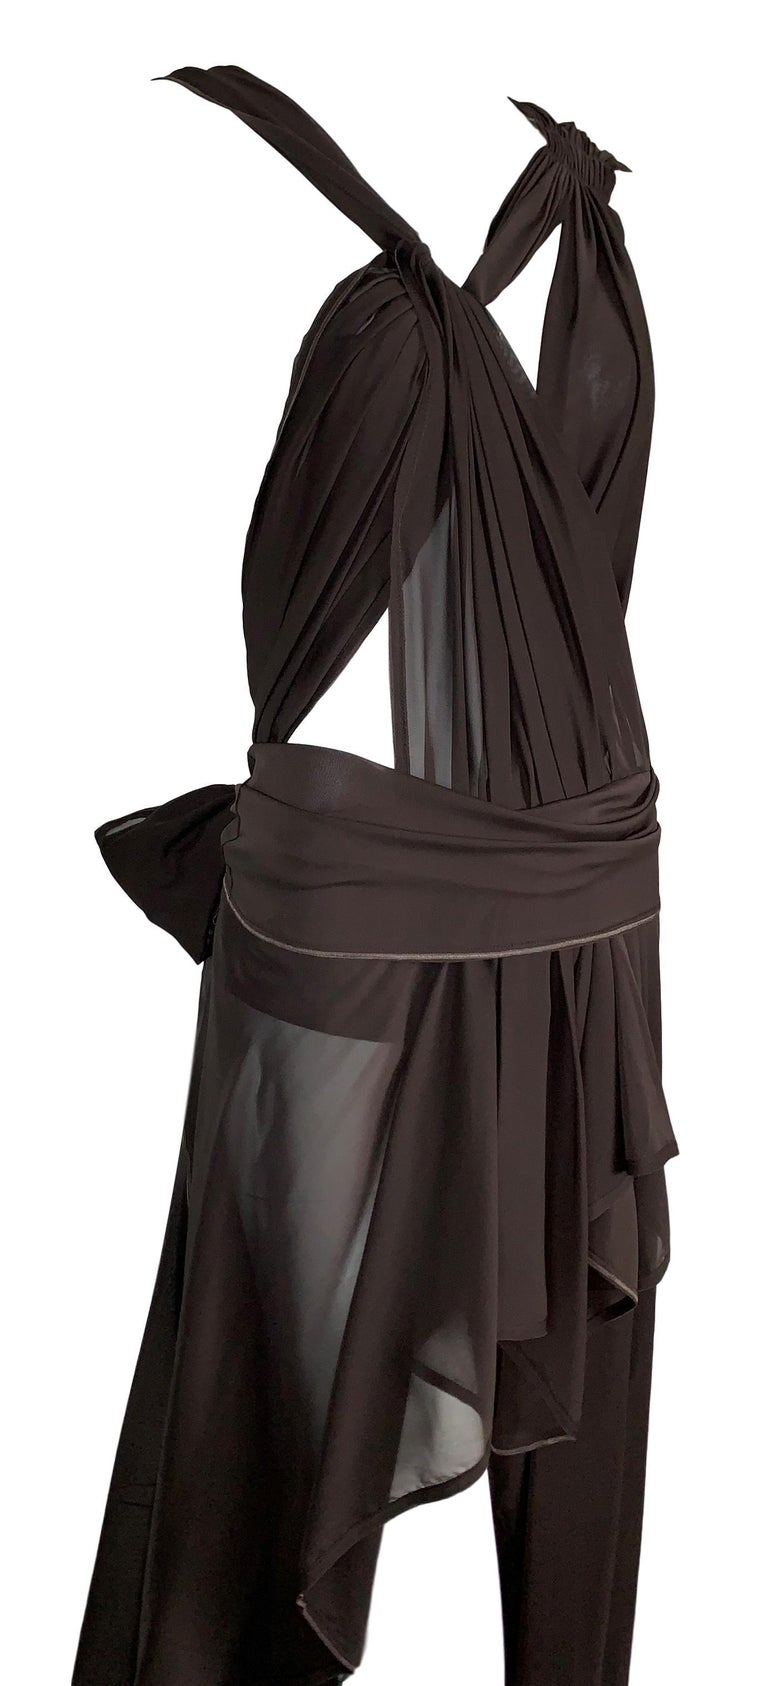 S/S 2002 Yves Saint Laurent Tom Ford Runway Sheer Brown Silk Cut-Out Dress In Good Condition For Sale In Yukon, OK